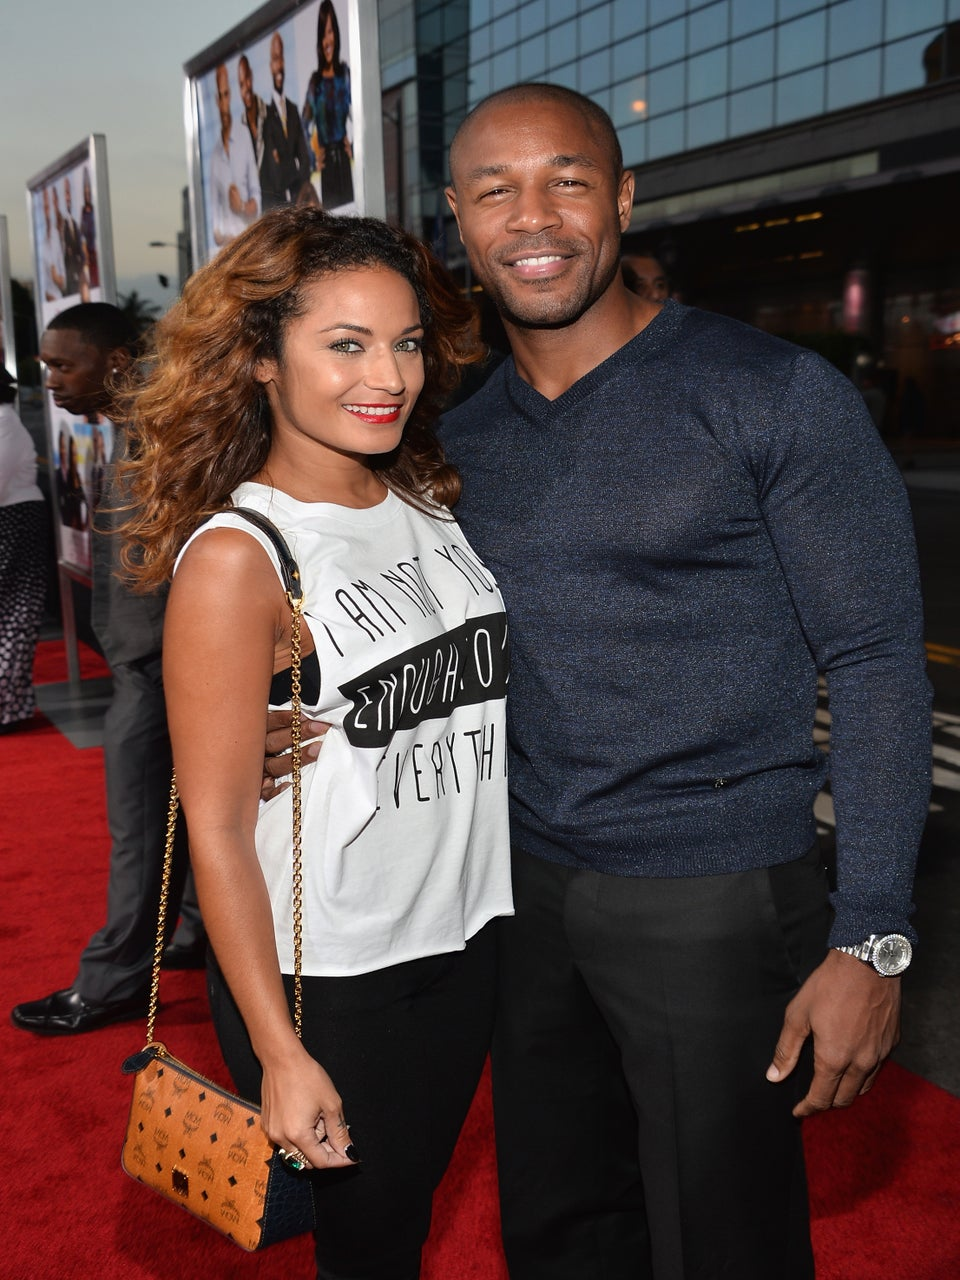 Tank Proposed To Longtime Girlfriend Zena Foster